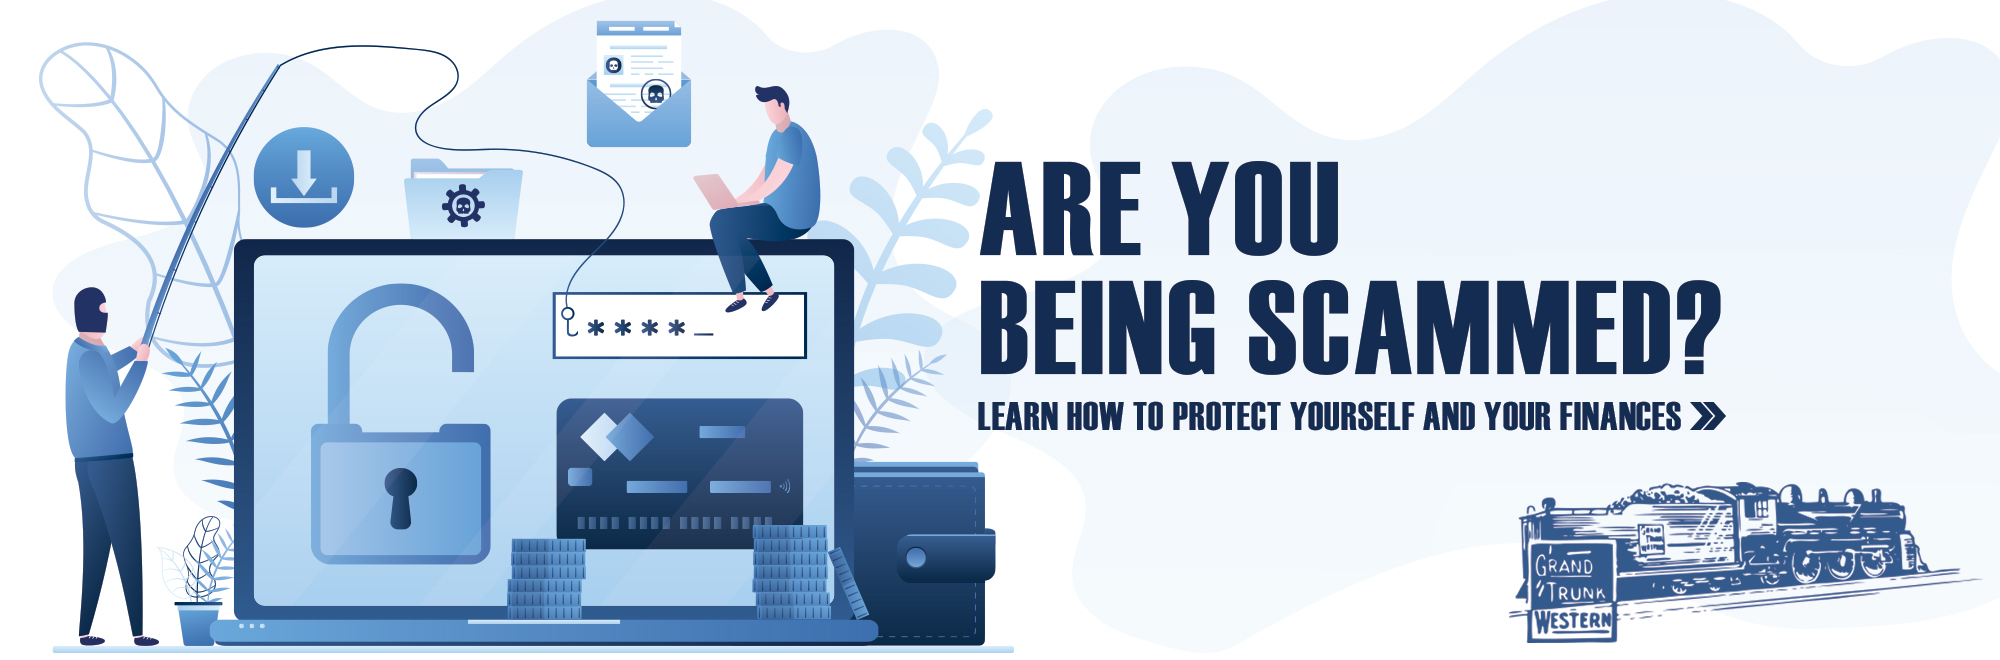 Are you being scammed? Learn how to protect yourself and your finances